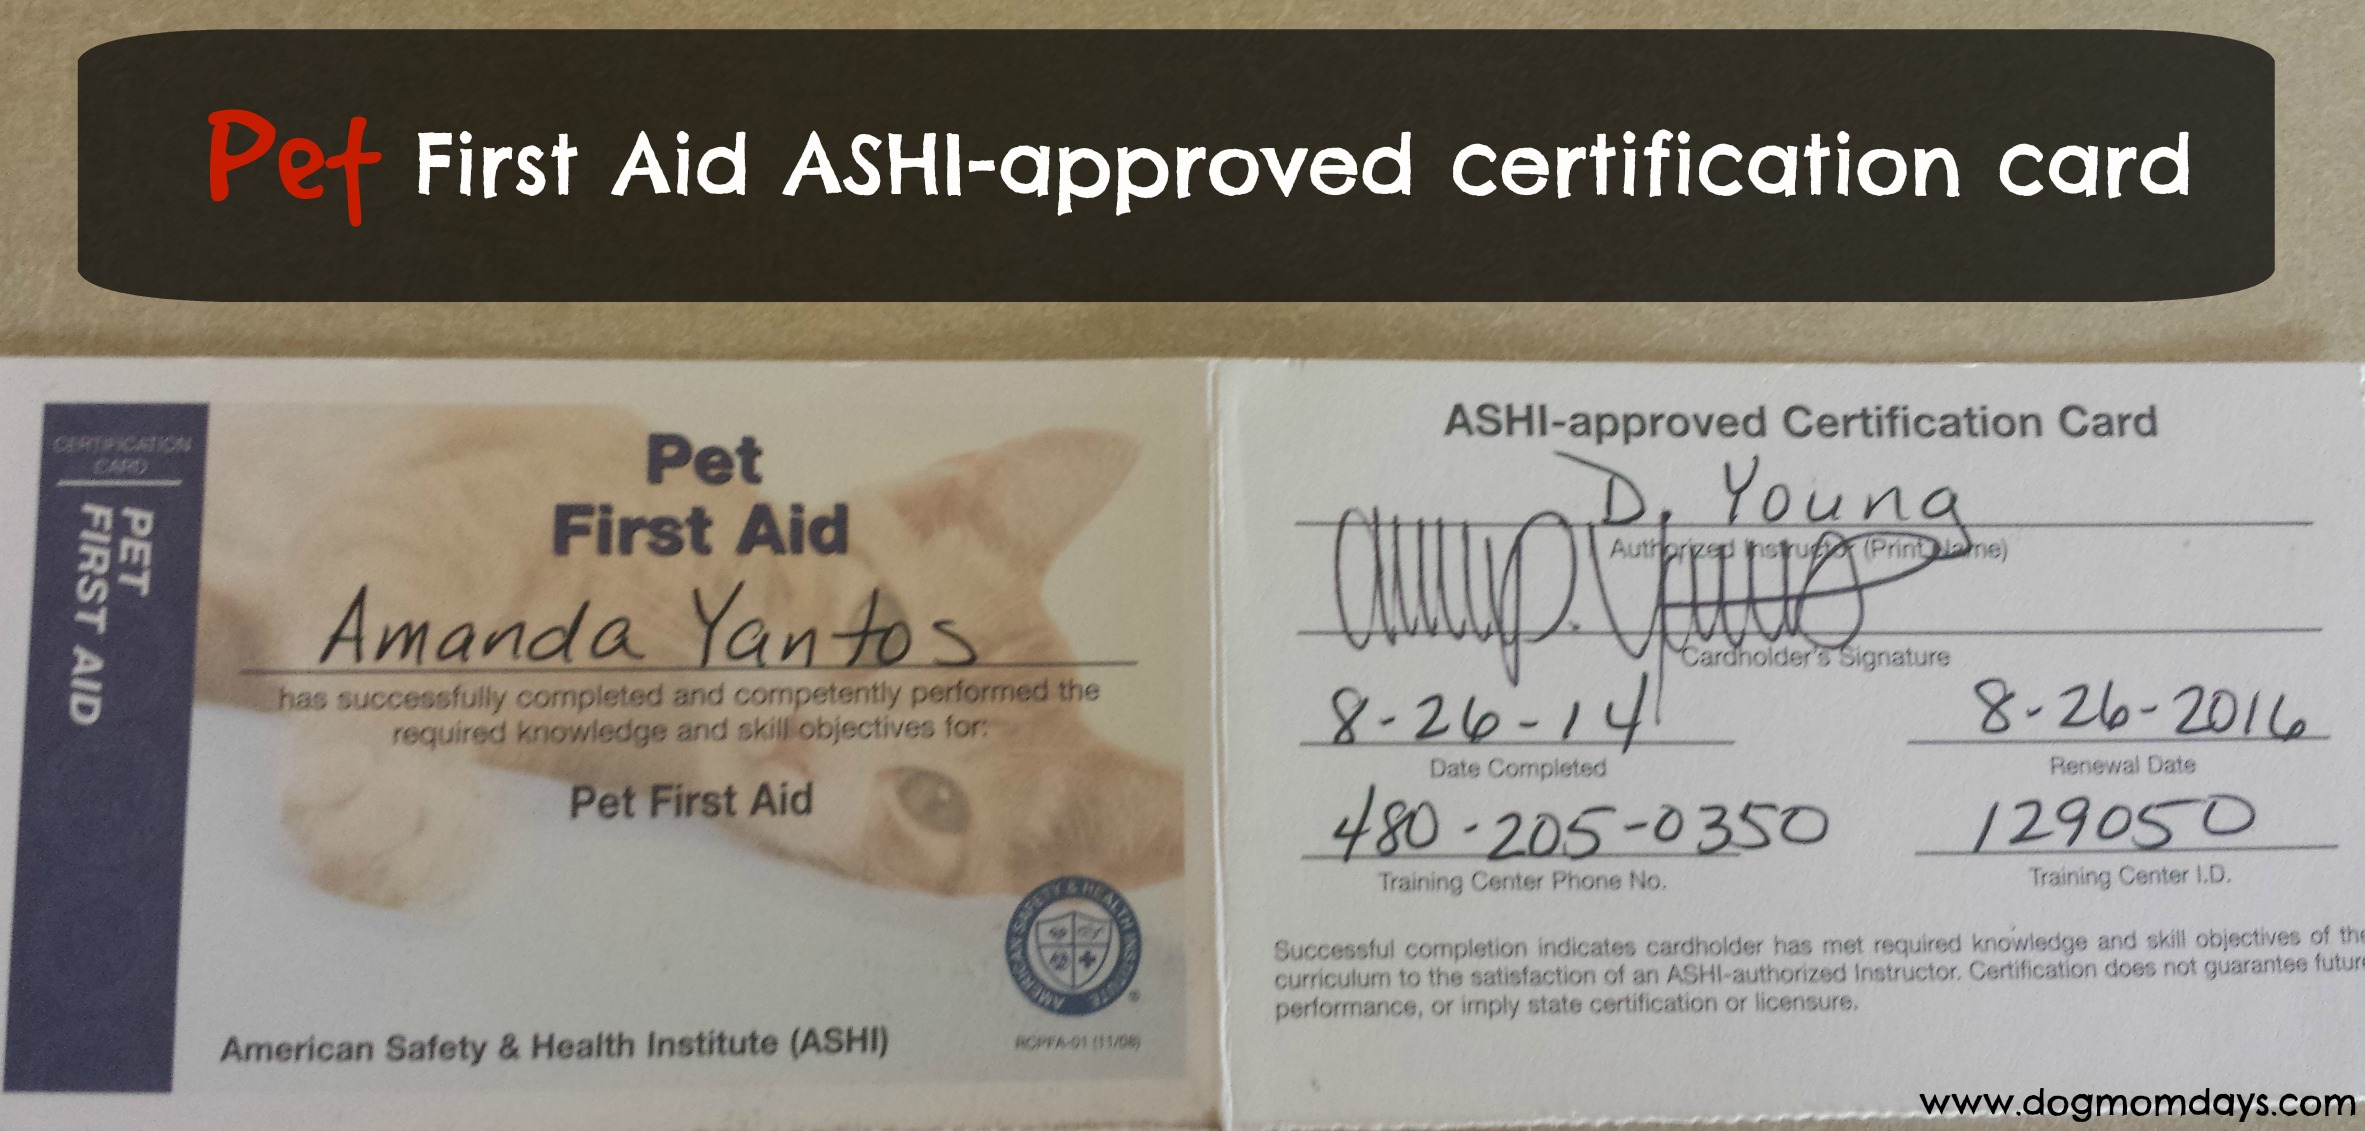 National pet first aid awareness month becoming certified in my pet first aid ashi approved certification card i carry it in my wallet xflitez Images